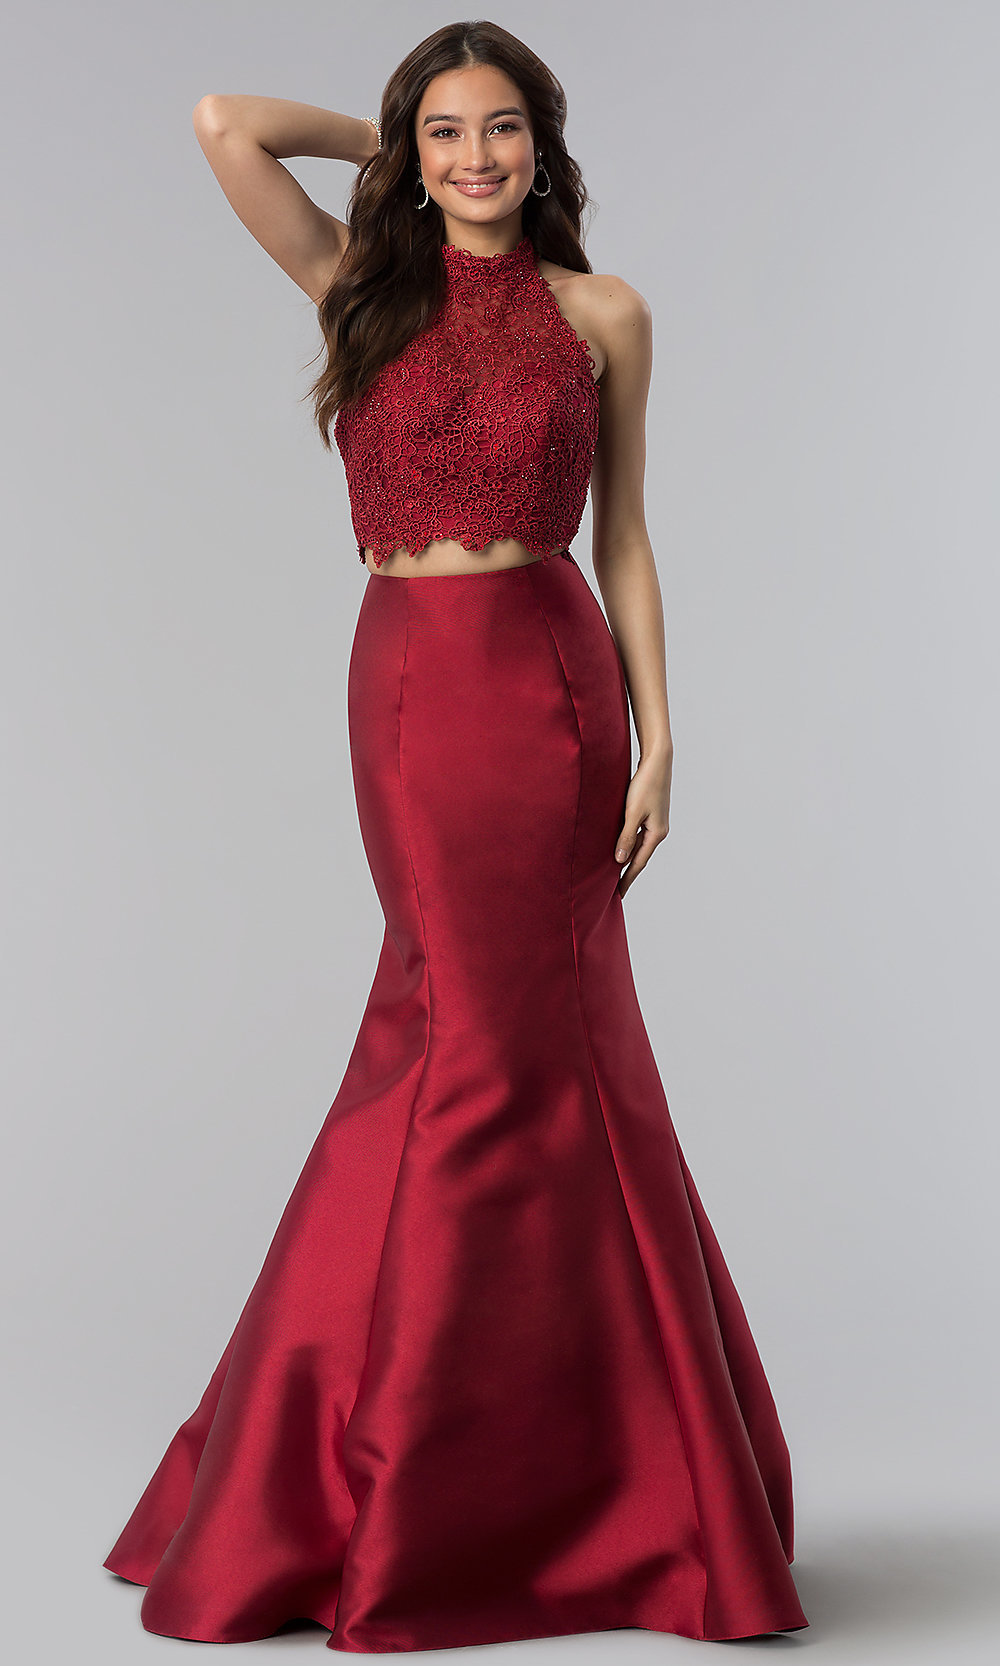 513ab8f7ad83 Long Two-Piece Prom Dress with Lace Top and Mermaid